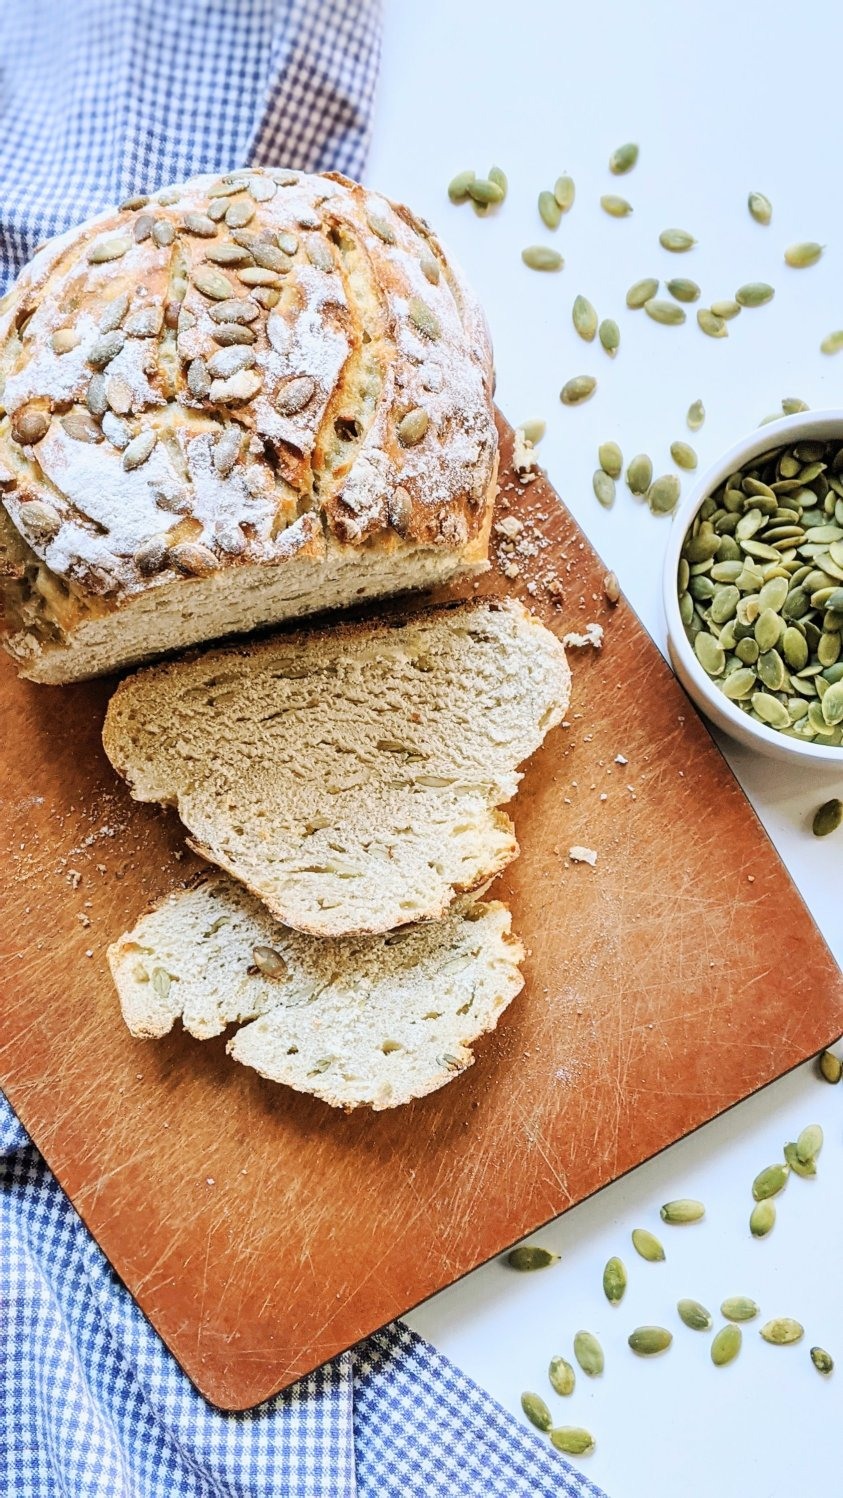 pumpkin seed bread with sourodugh discard starter vegan egg free bread recipes with pepitas bread recipes simple seeded sourdough recipe